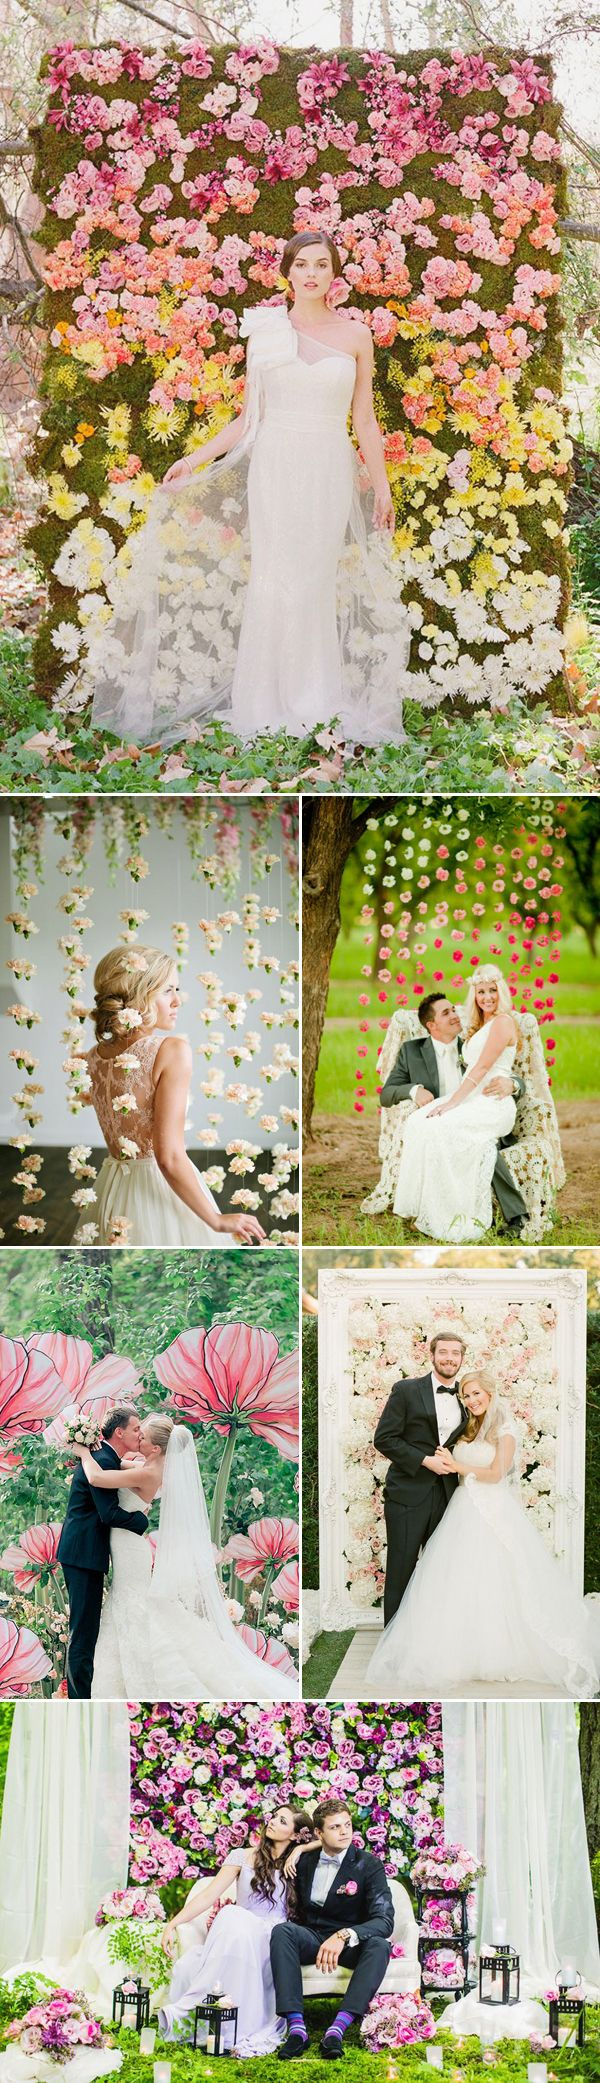 Beautiful floral backdrops ideas that will make you fall in love.